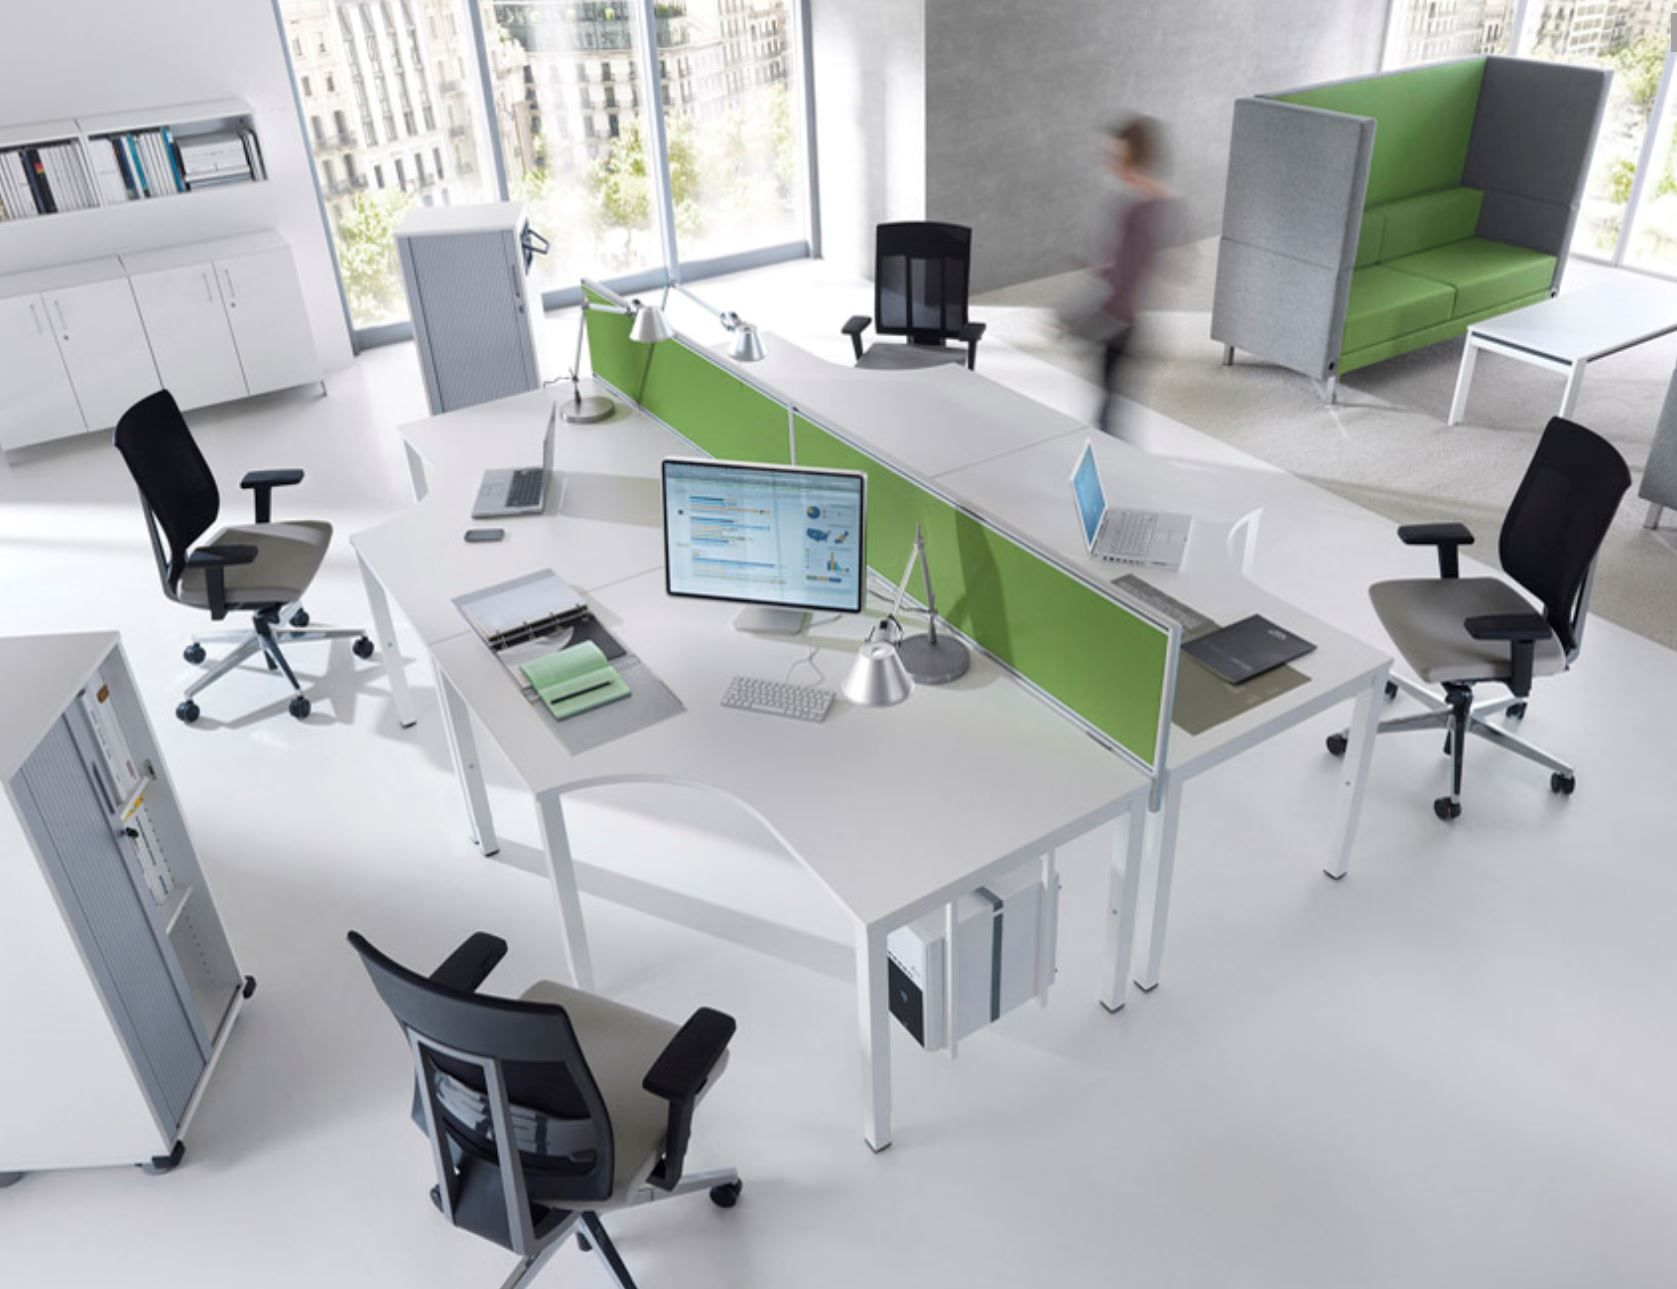 mikomax primo systems workstation office design home on smart corner home office ideas id=47284